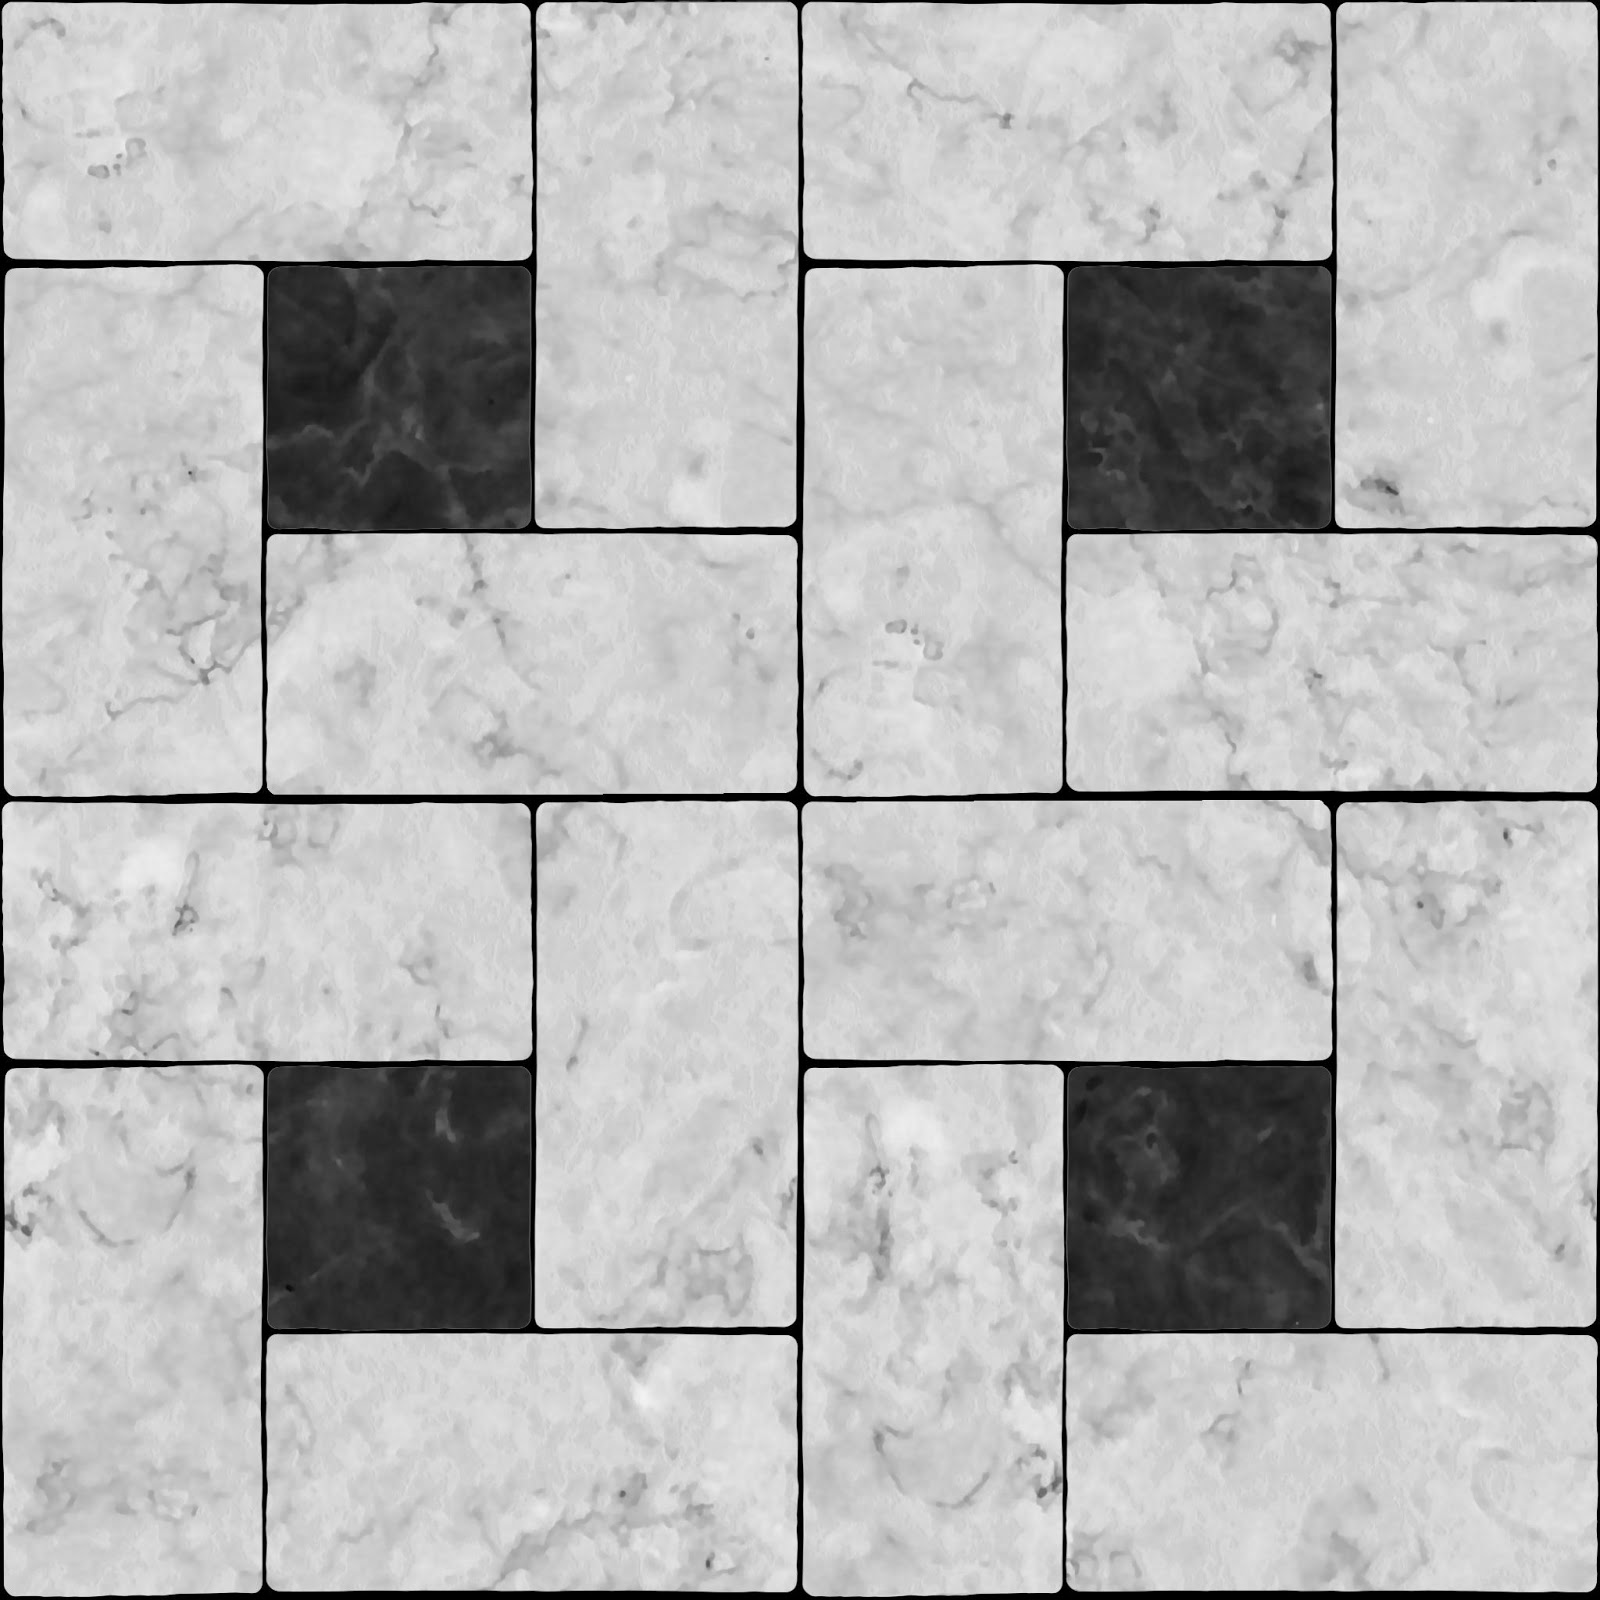 school tile floor texture. Marble School Tile Floor Texture I